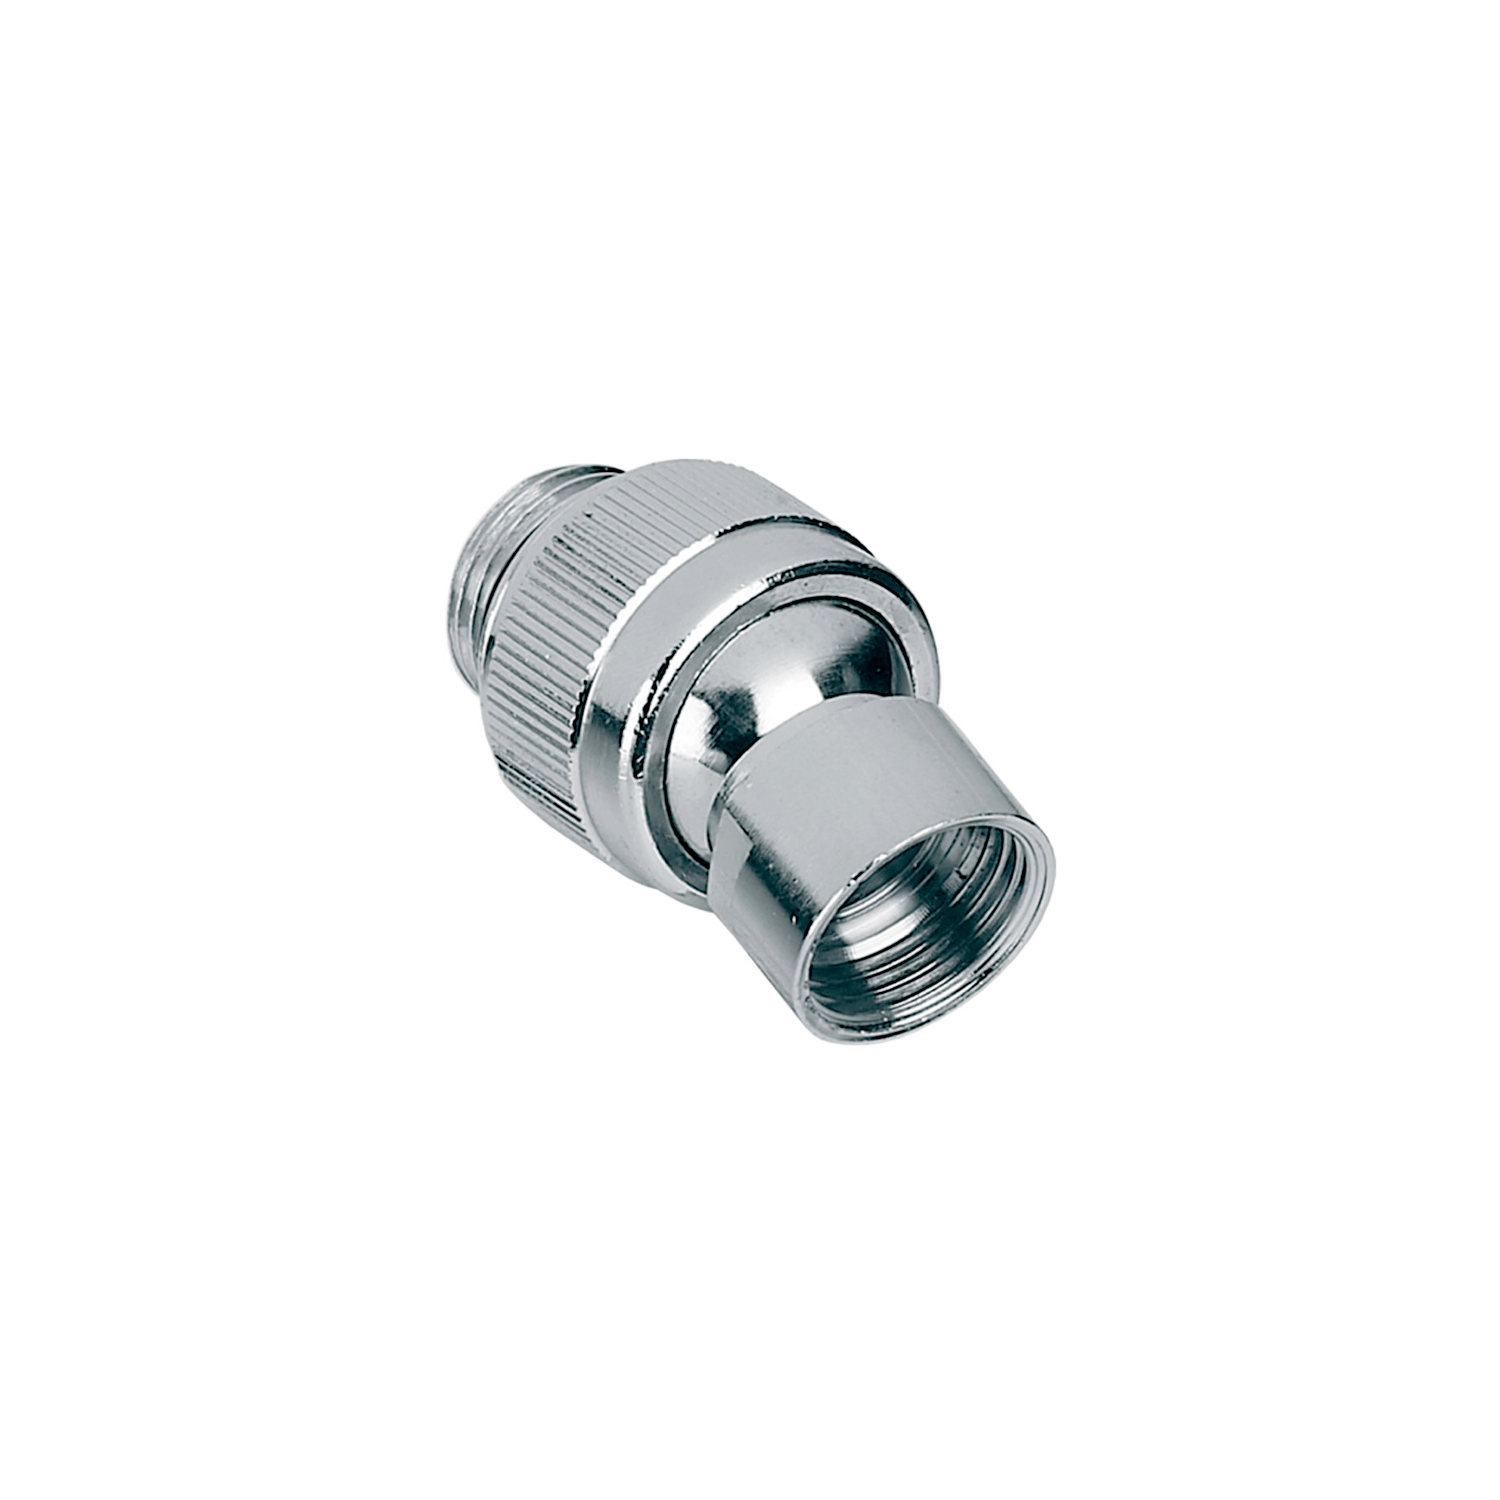 Superior LB 1725 Connector With Swivel Ball Joint For Shower Rose